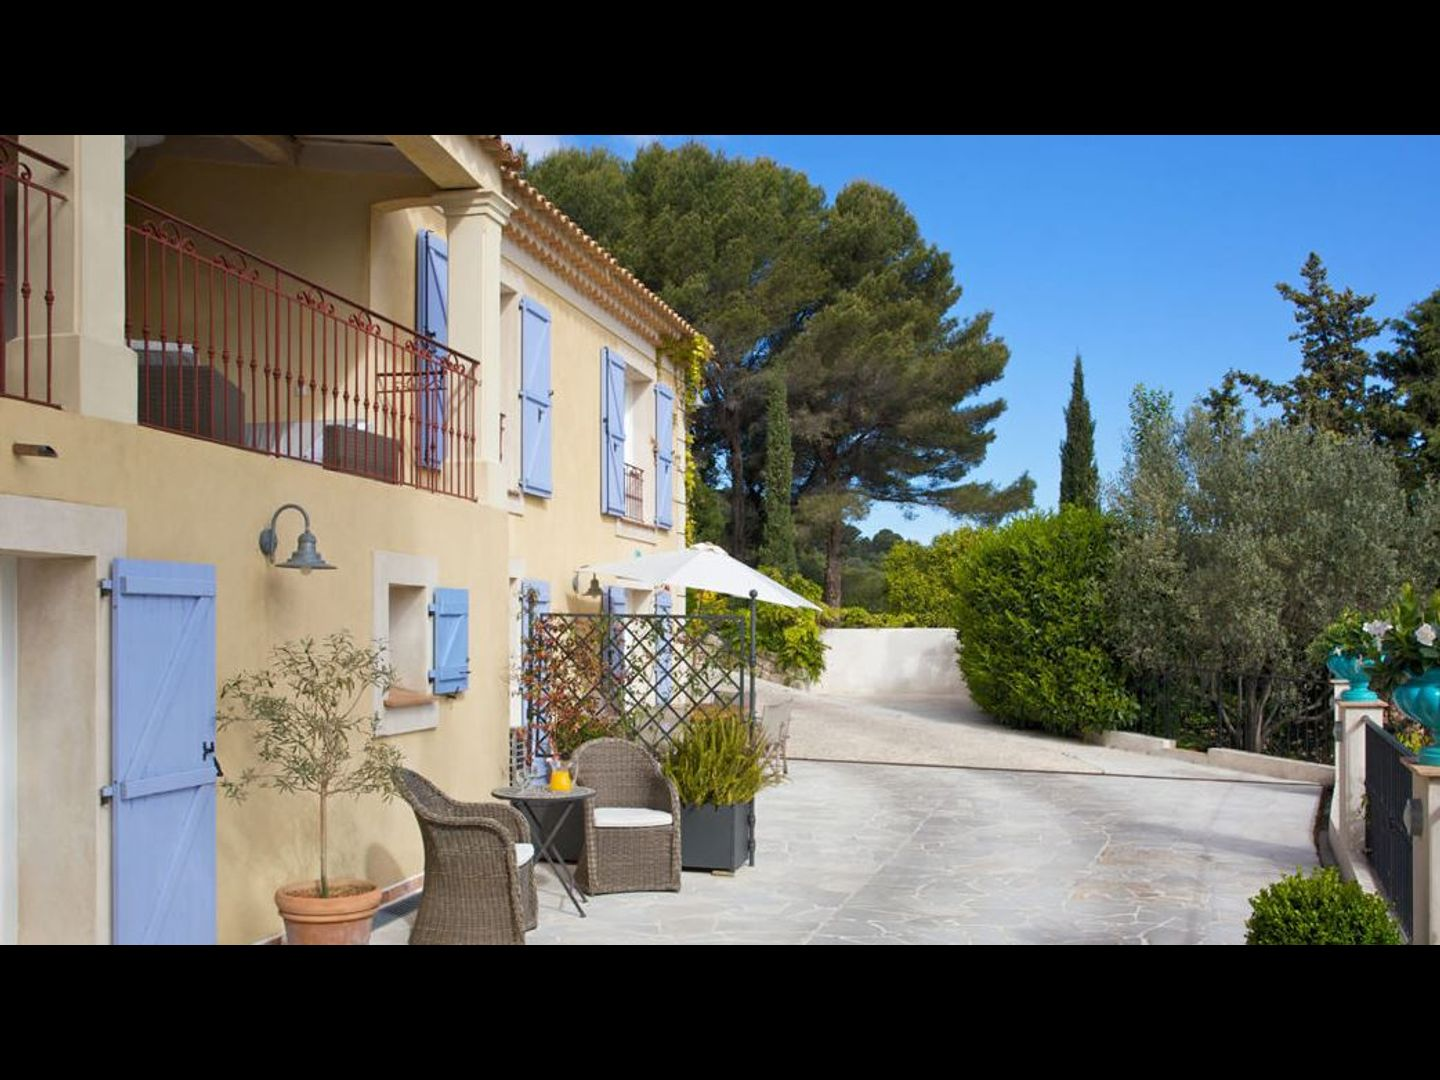 """A house with trees in the background at Villa """"Le Port d'attache""""."""